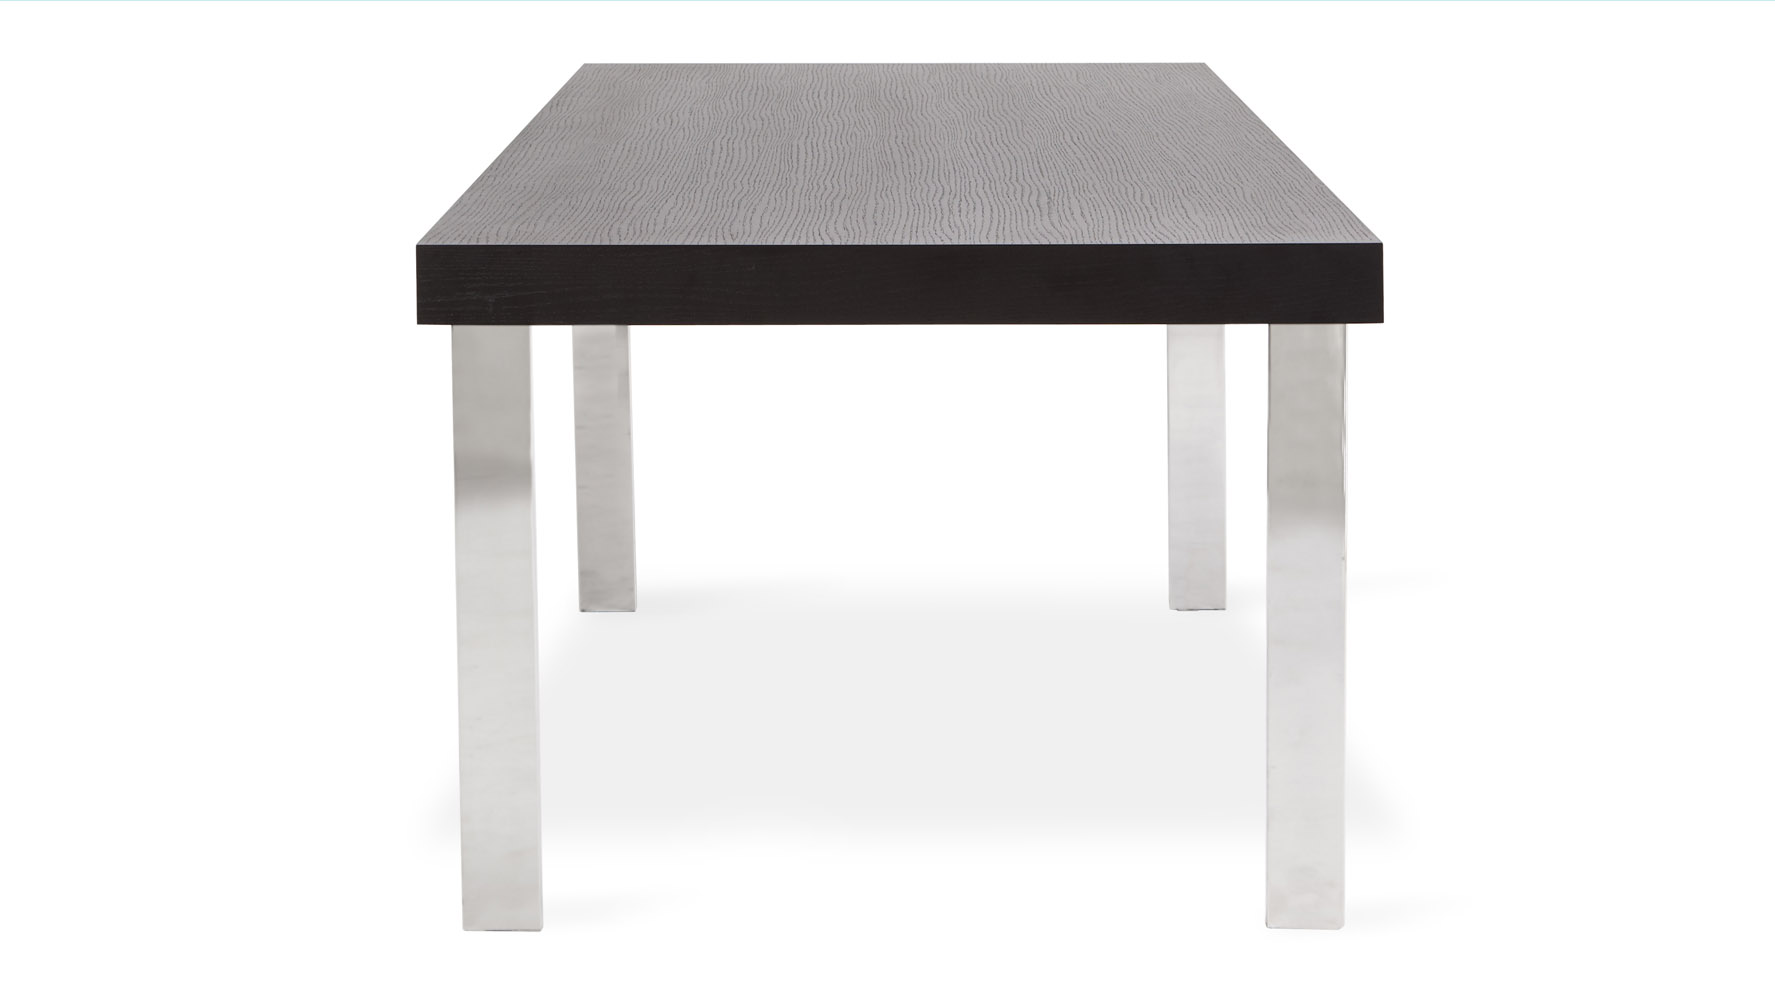 Very Impressive portraiture of Home / DINING / Tables / Norah Dining Table with #6D6D5E color and 1775x1000 pixels